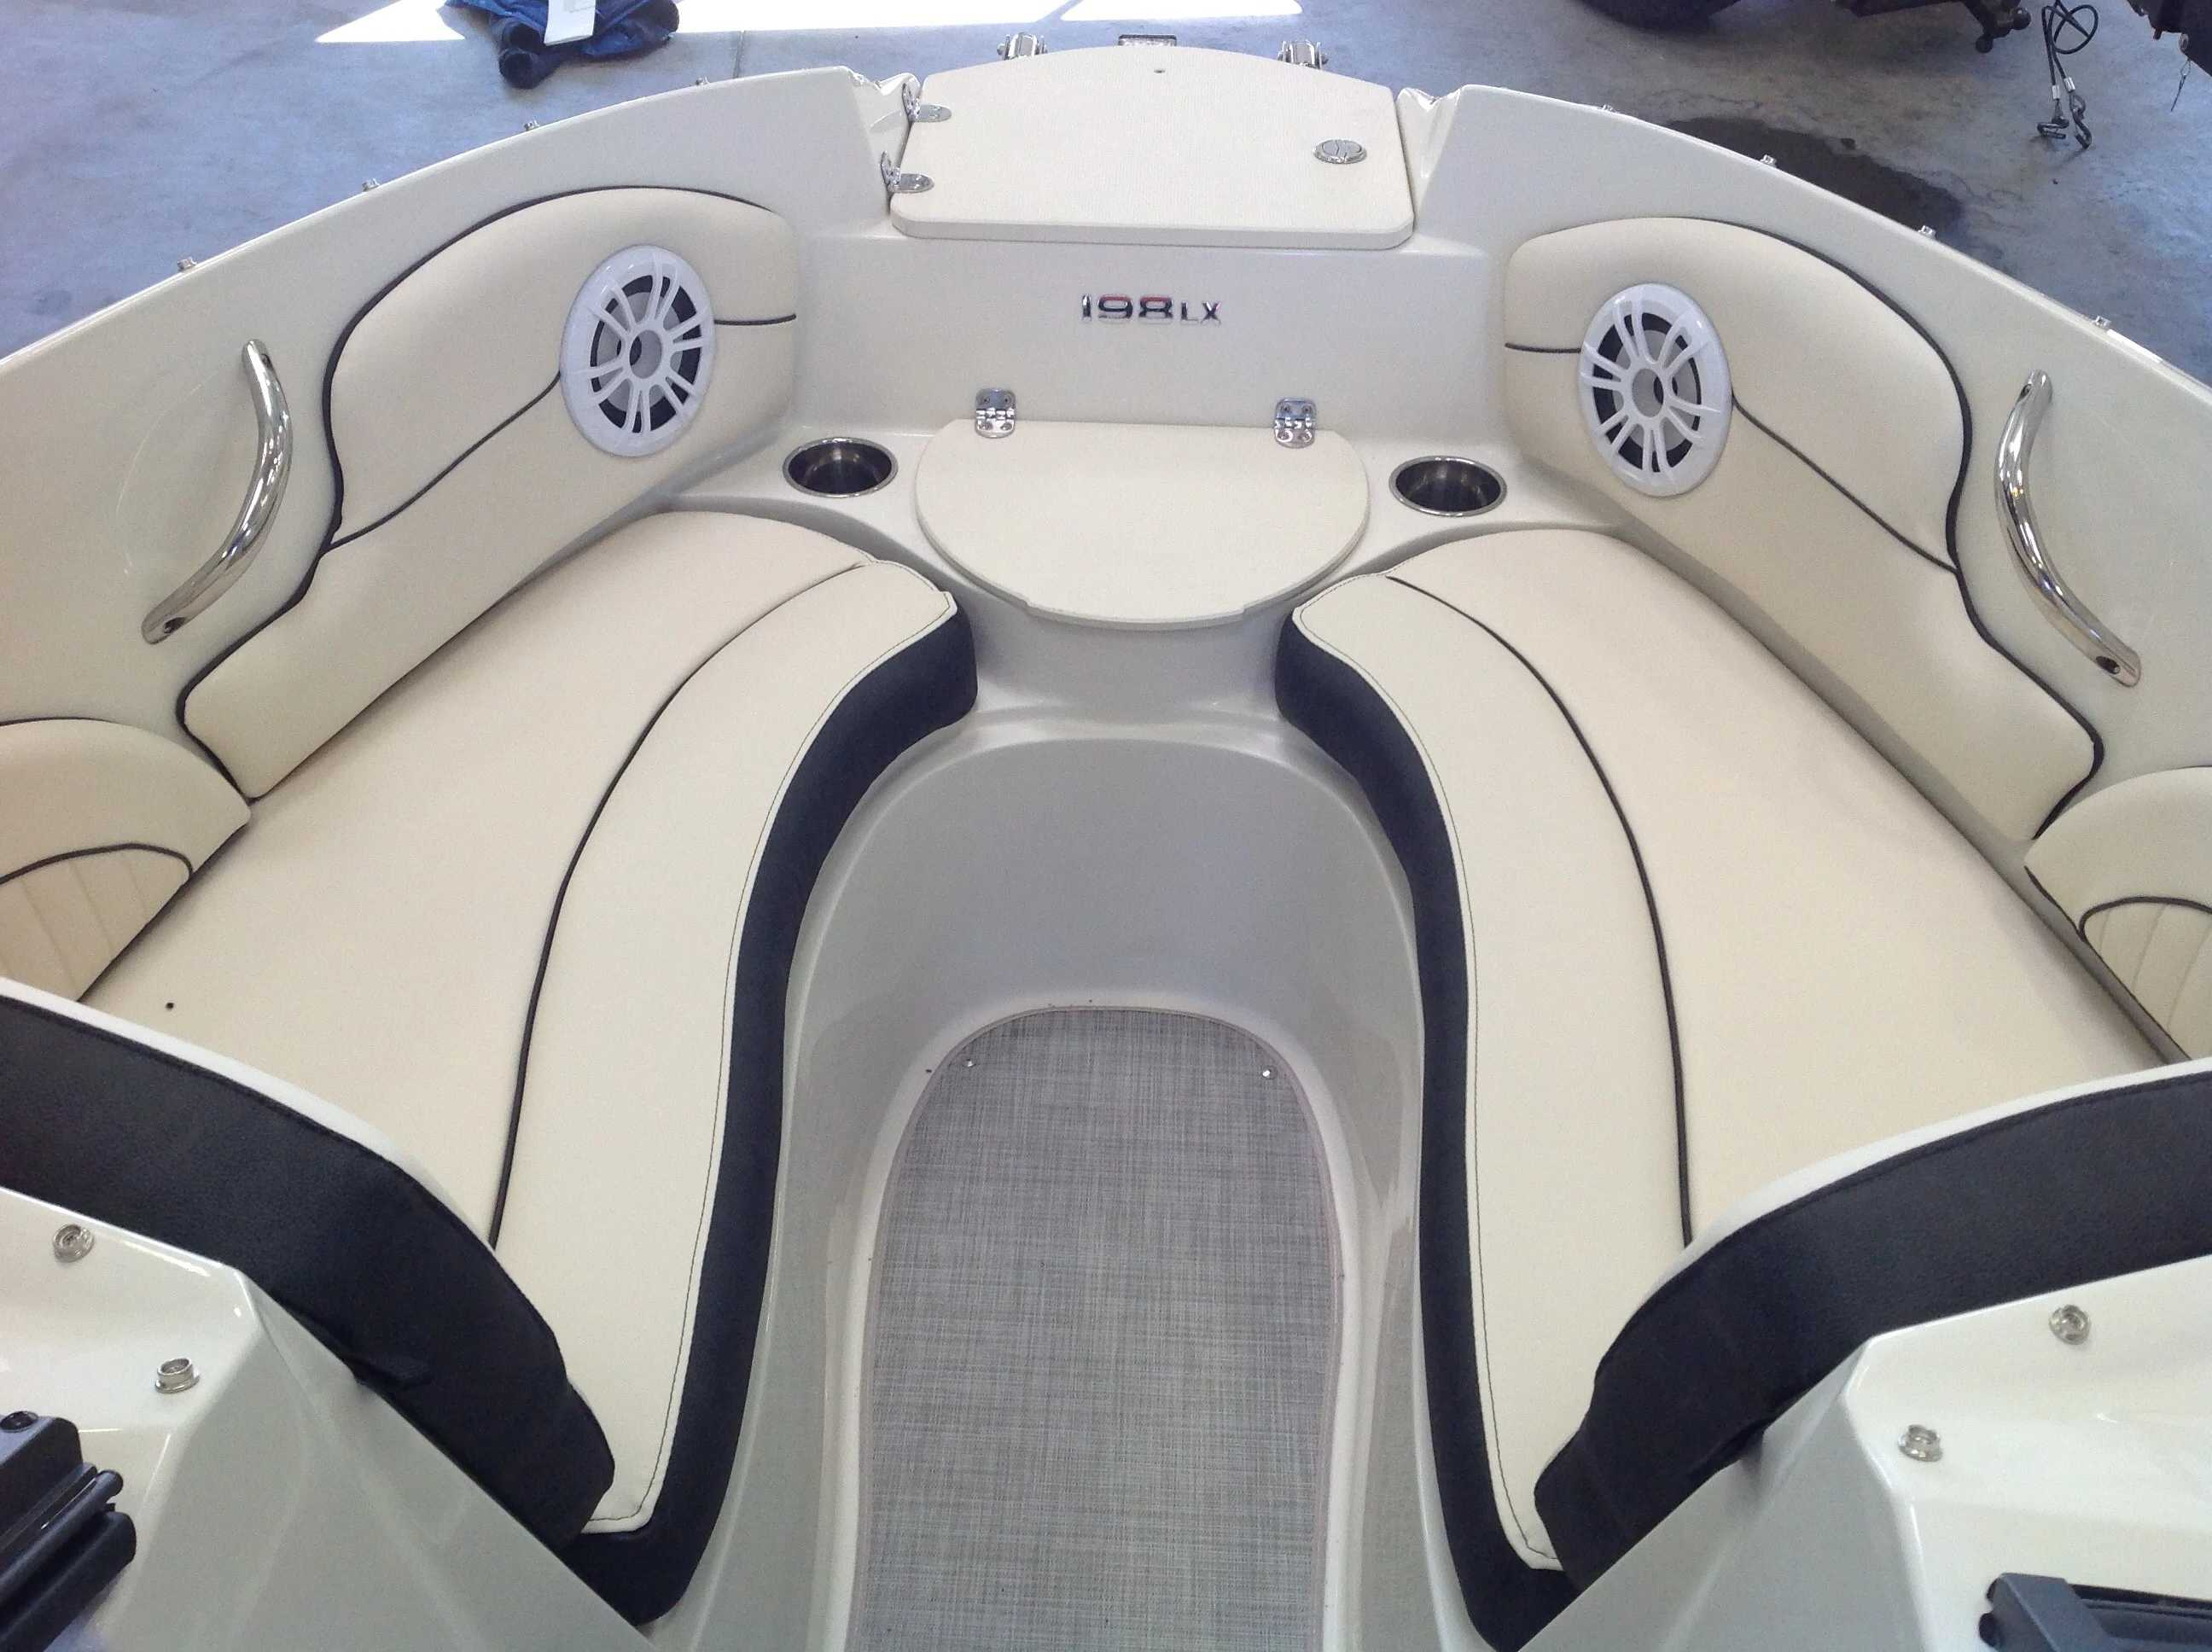 2021 Stingray boat for sale, model of the boat is 198lx & Image # 4 of 14